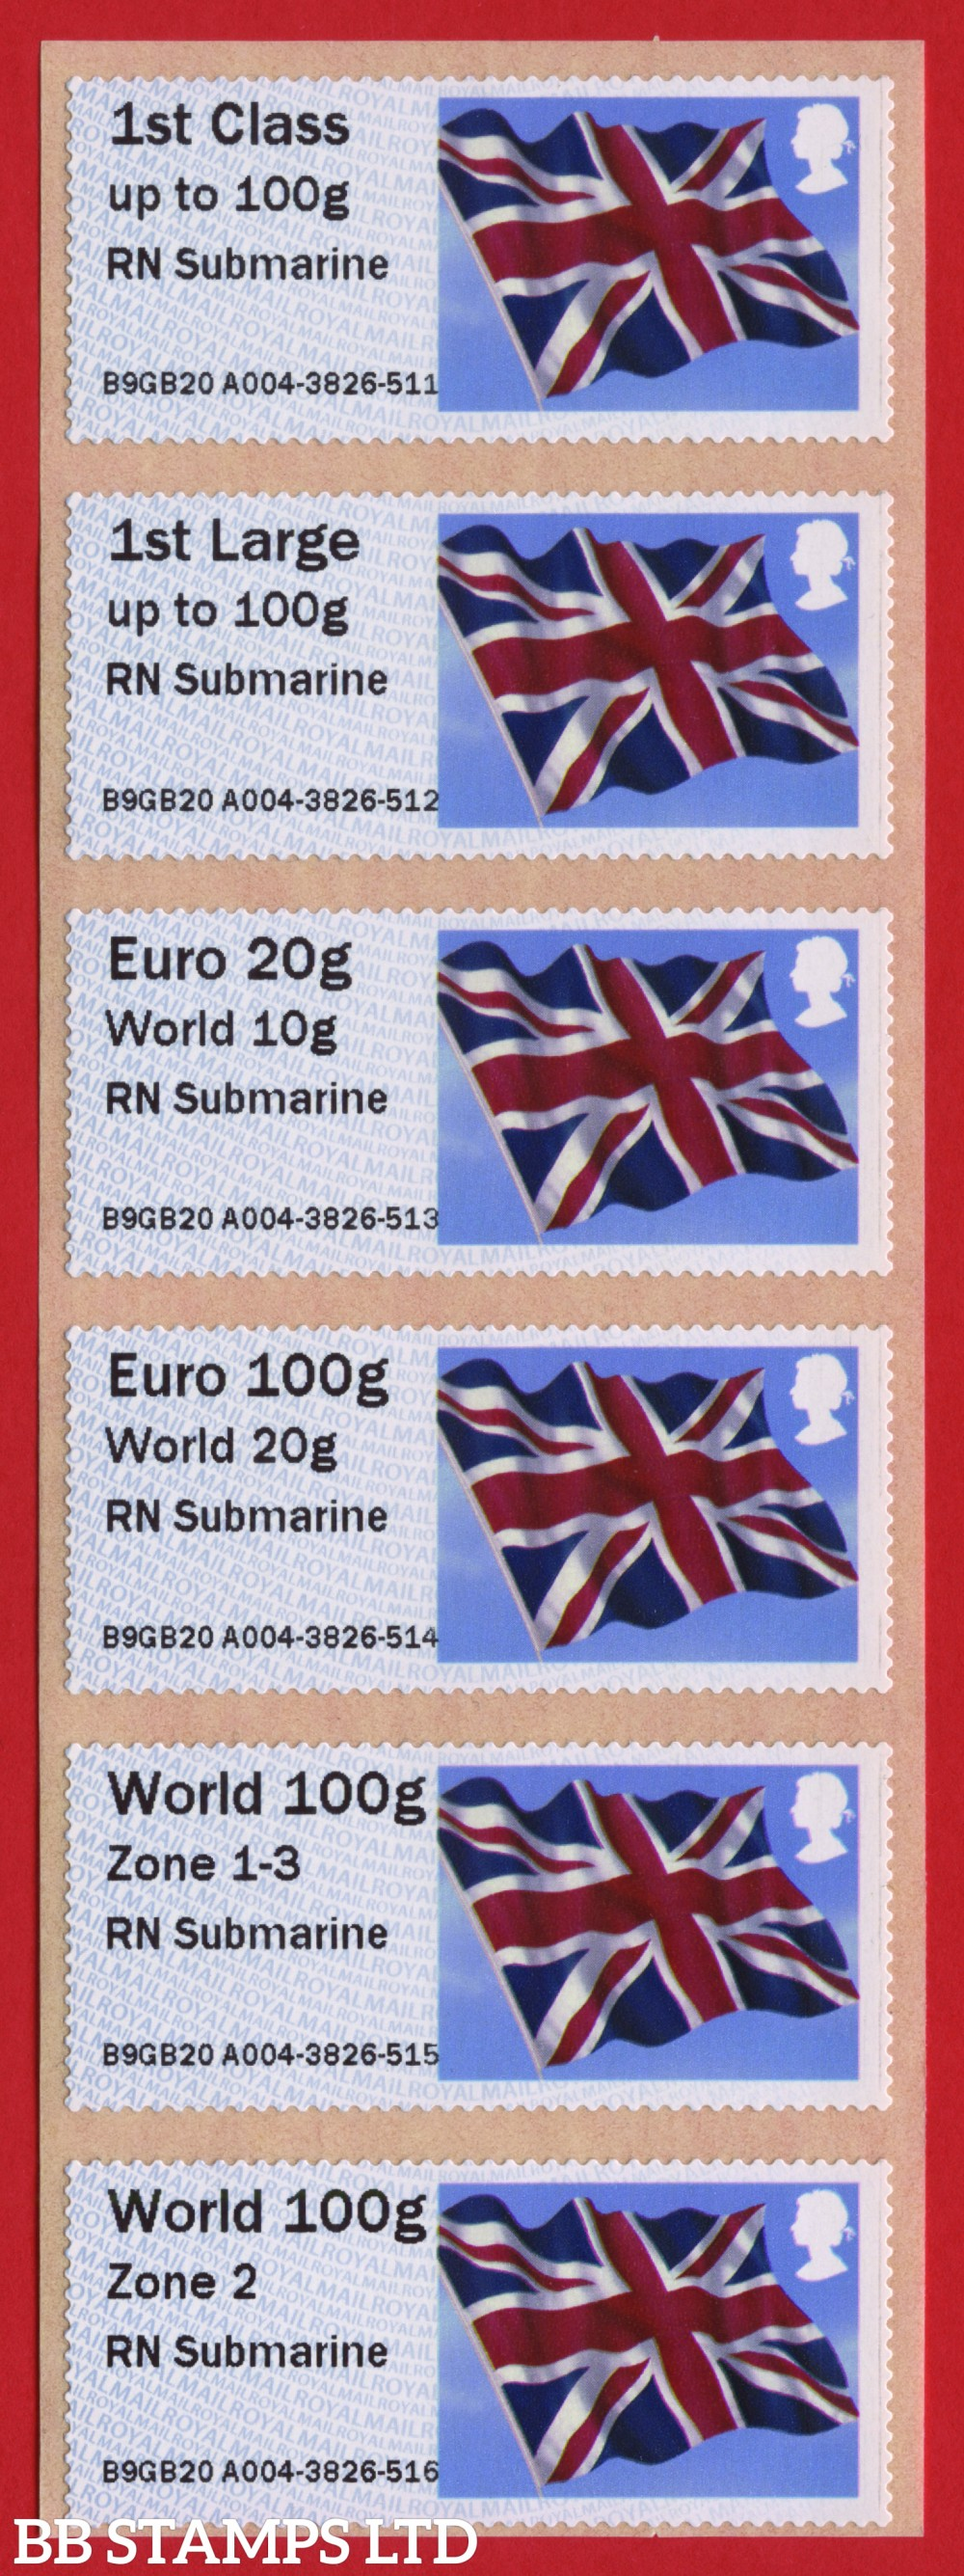 Union Flag RN Submarine, with new overseas tariff stamps as issued on 01 September 2020. Set of 6, TIIIA: 1st, 1stL, Euro 20g World 10g – and new tariff Euro 100g World 20g/World 100g Zone 1-3/World Zone 2 stamps: NO YEAR CODE (BK30 P1)